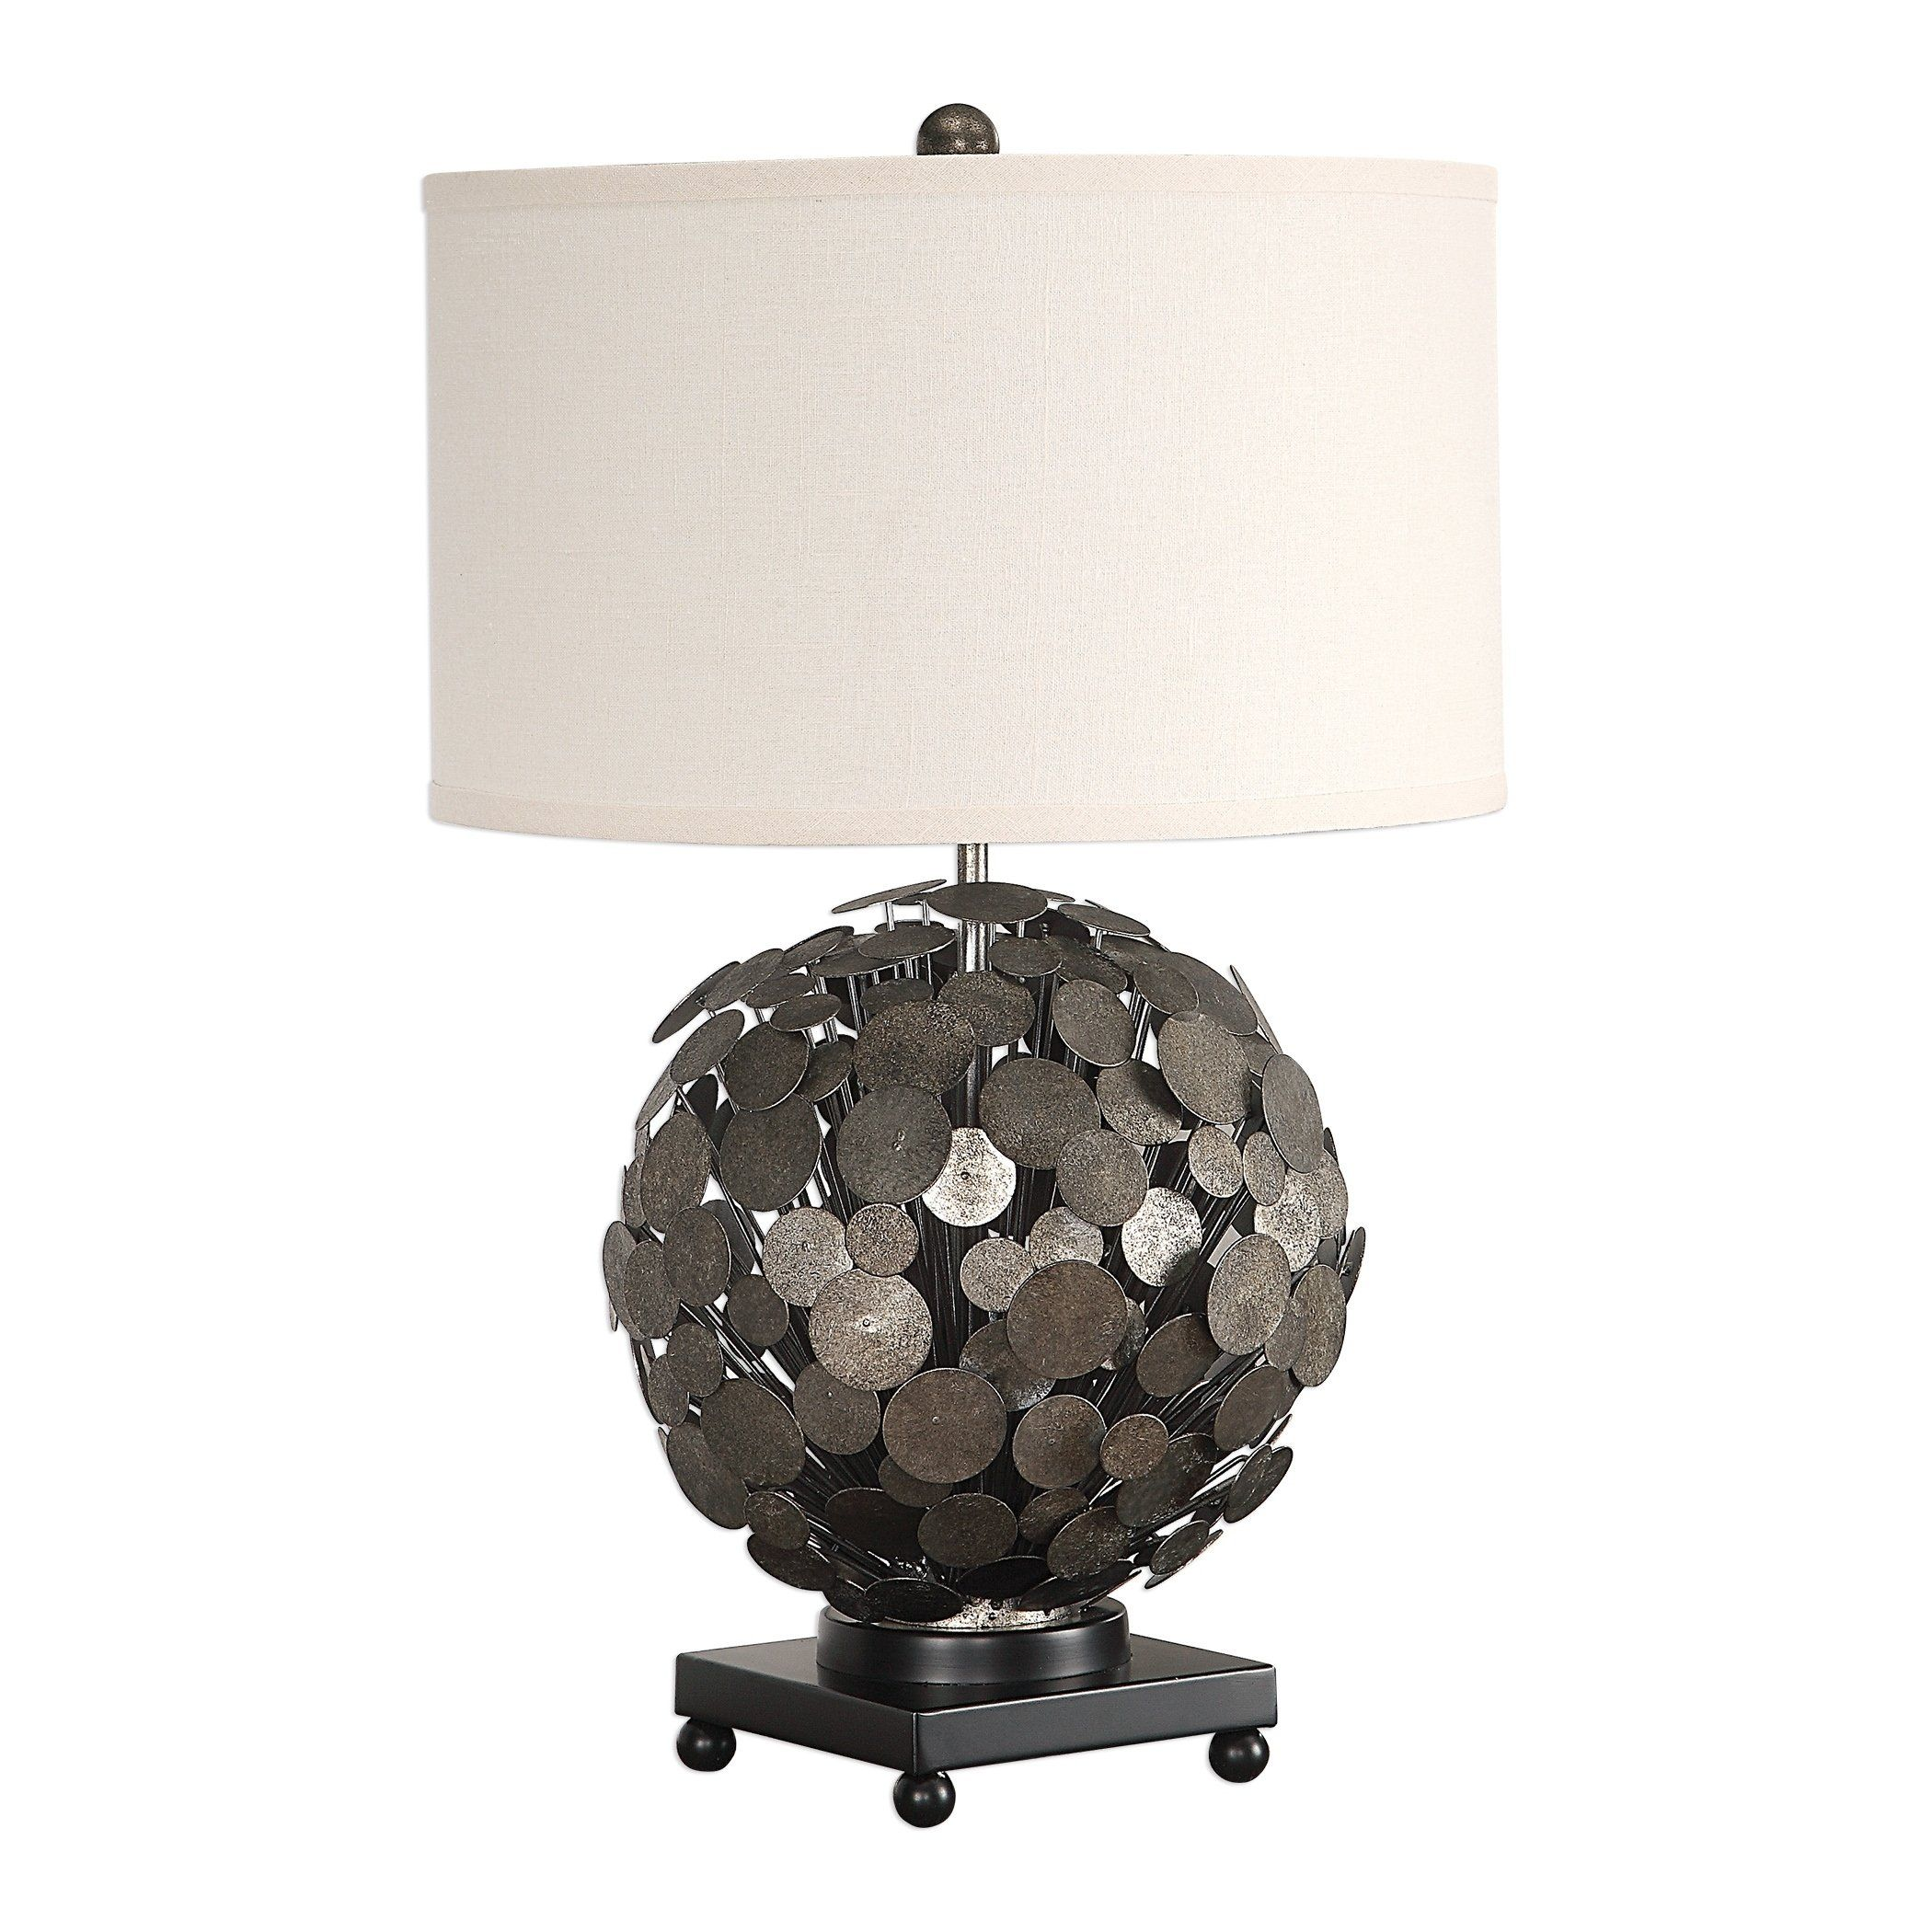 Uttermost Callisto Metallic Silver 1 Light Steel Disk Table Lamp